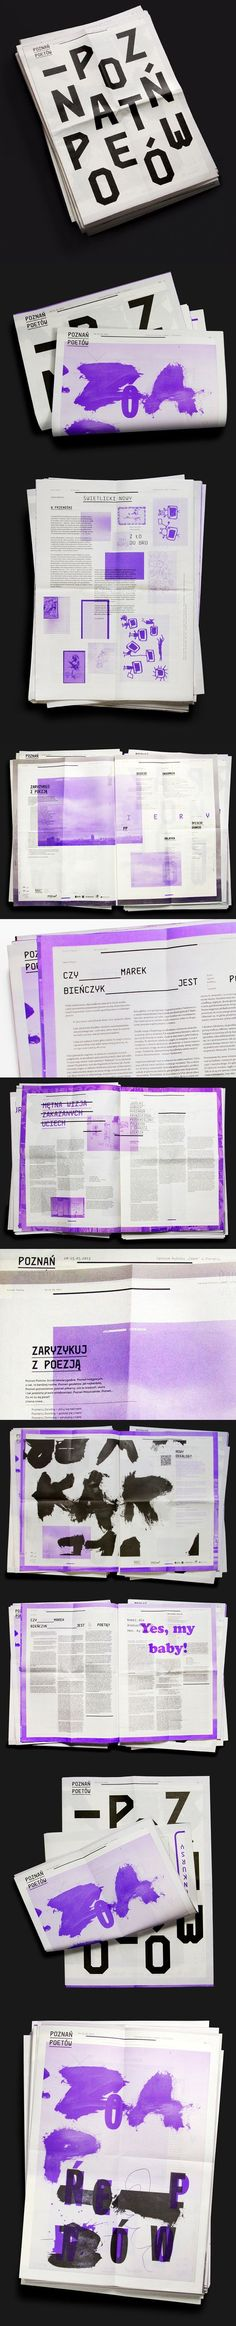 Poets' Poznan Newspaper - PPT design ideas